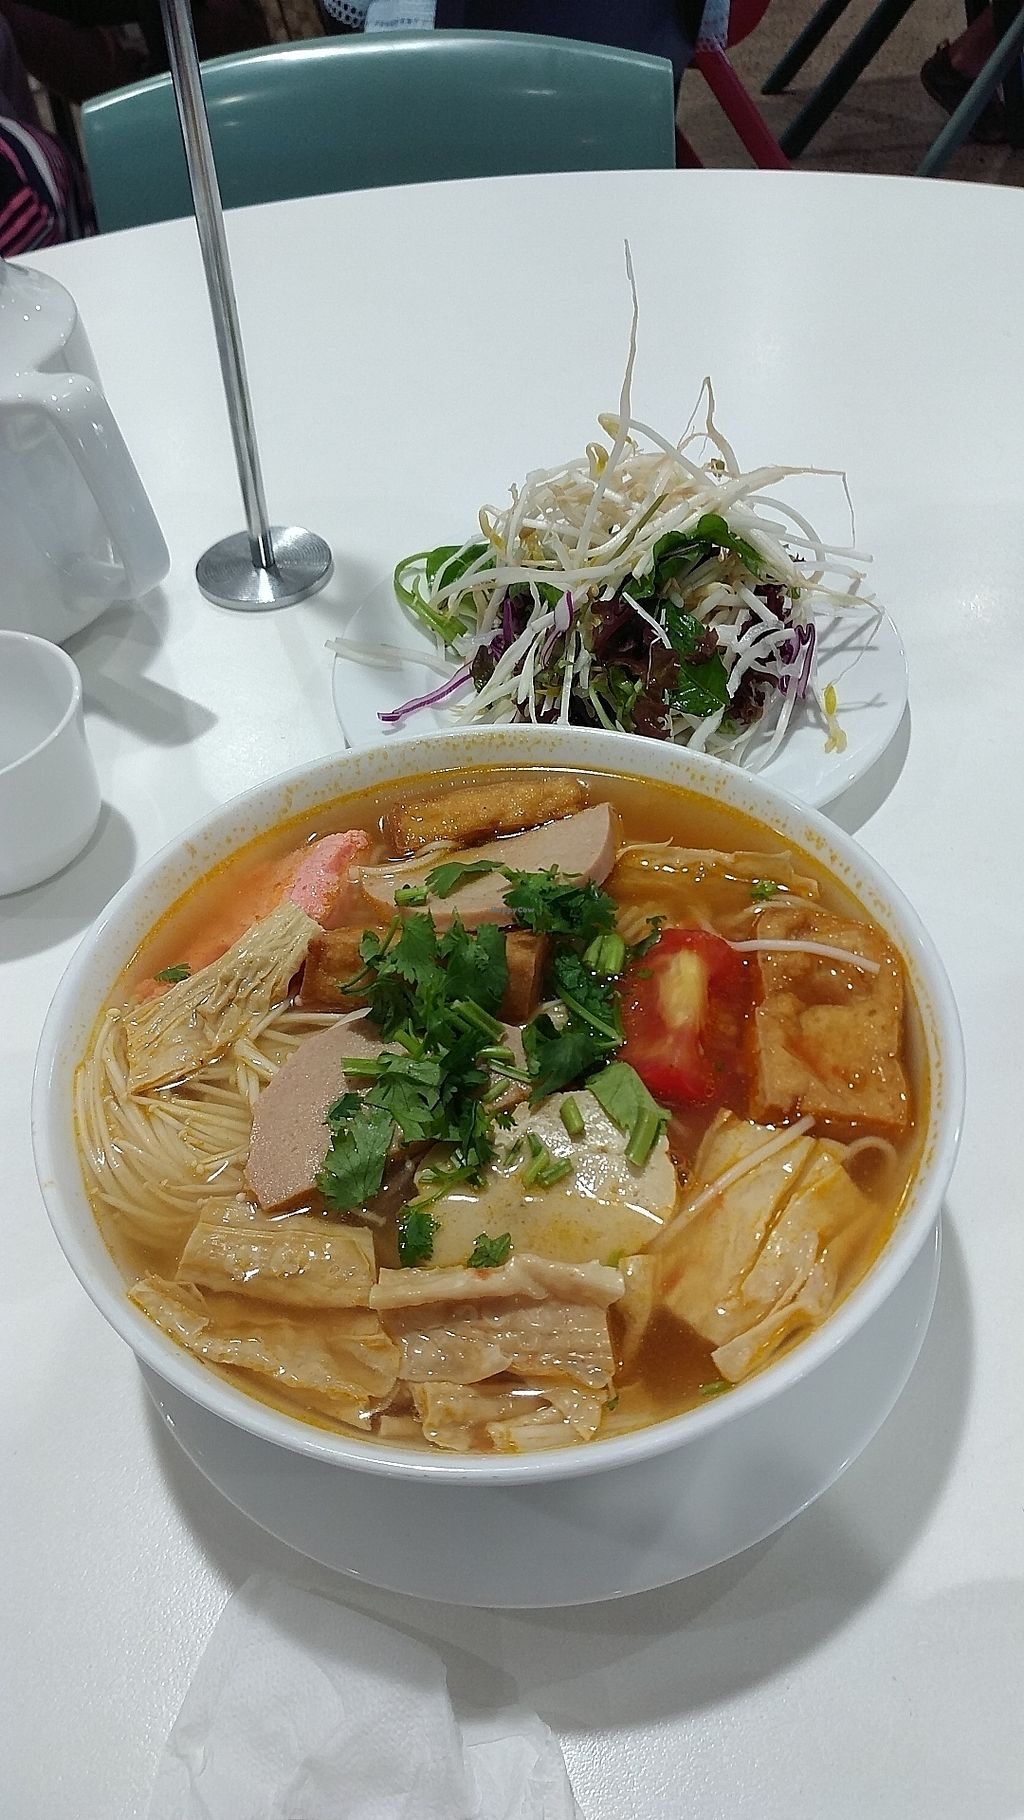 """Photo of Hoa Nghiem Vegie Hut  by <a href=""""/members/profile/vegelover"""">vegelover</a> <br/>Vegetarian Crab Noodle Soup <br/> January 27, 2018  - <a href='/contact/abuse/image/108975/351276'>Report</a>"""